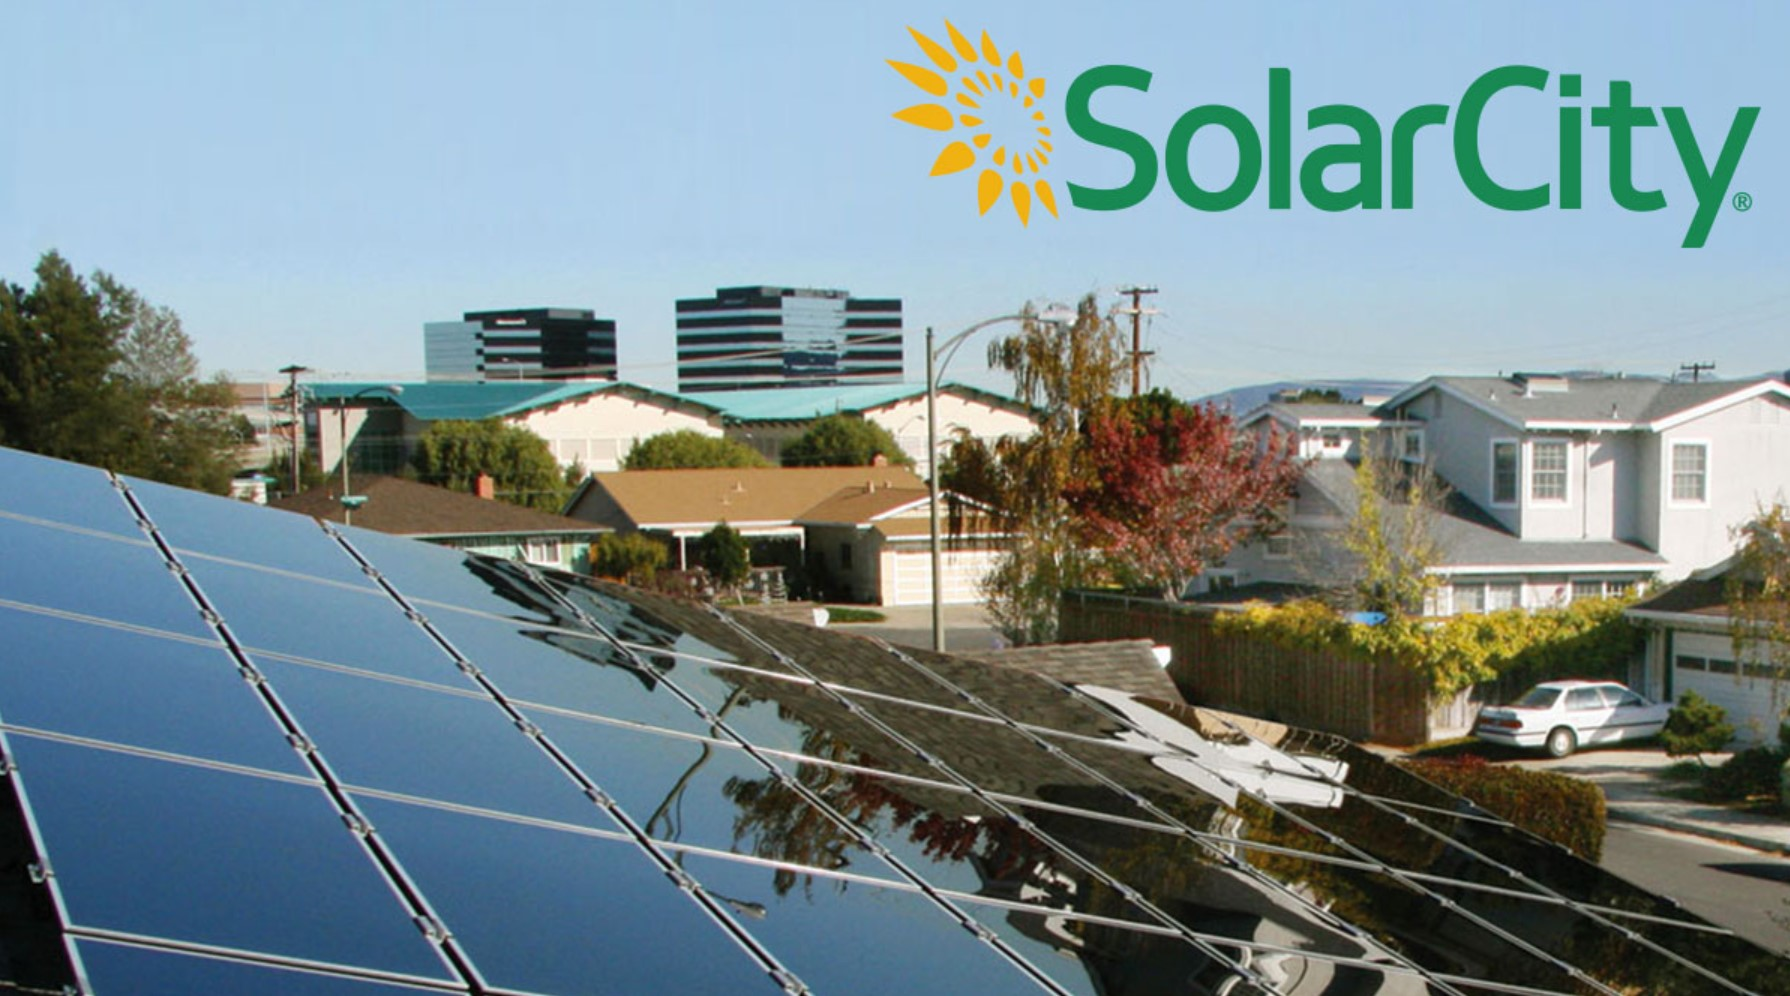 SolarCity reviews 2020